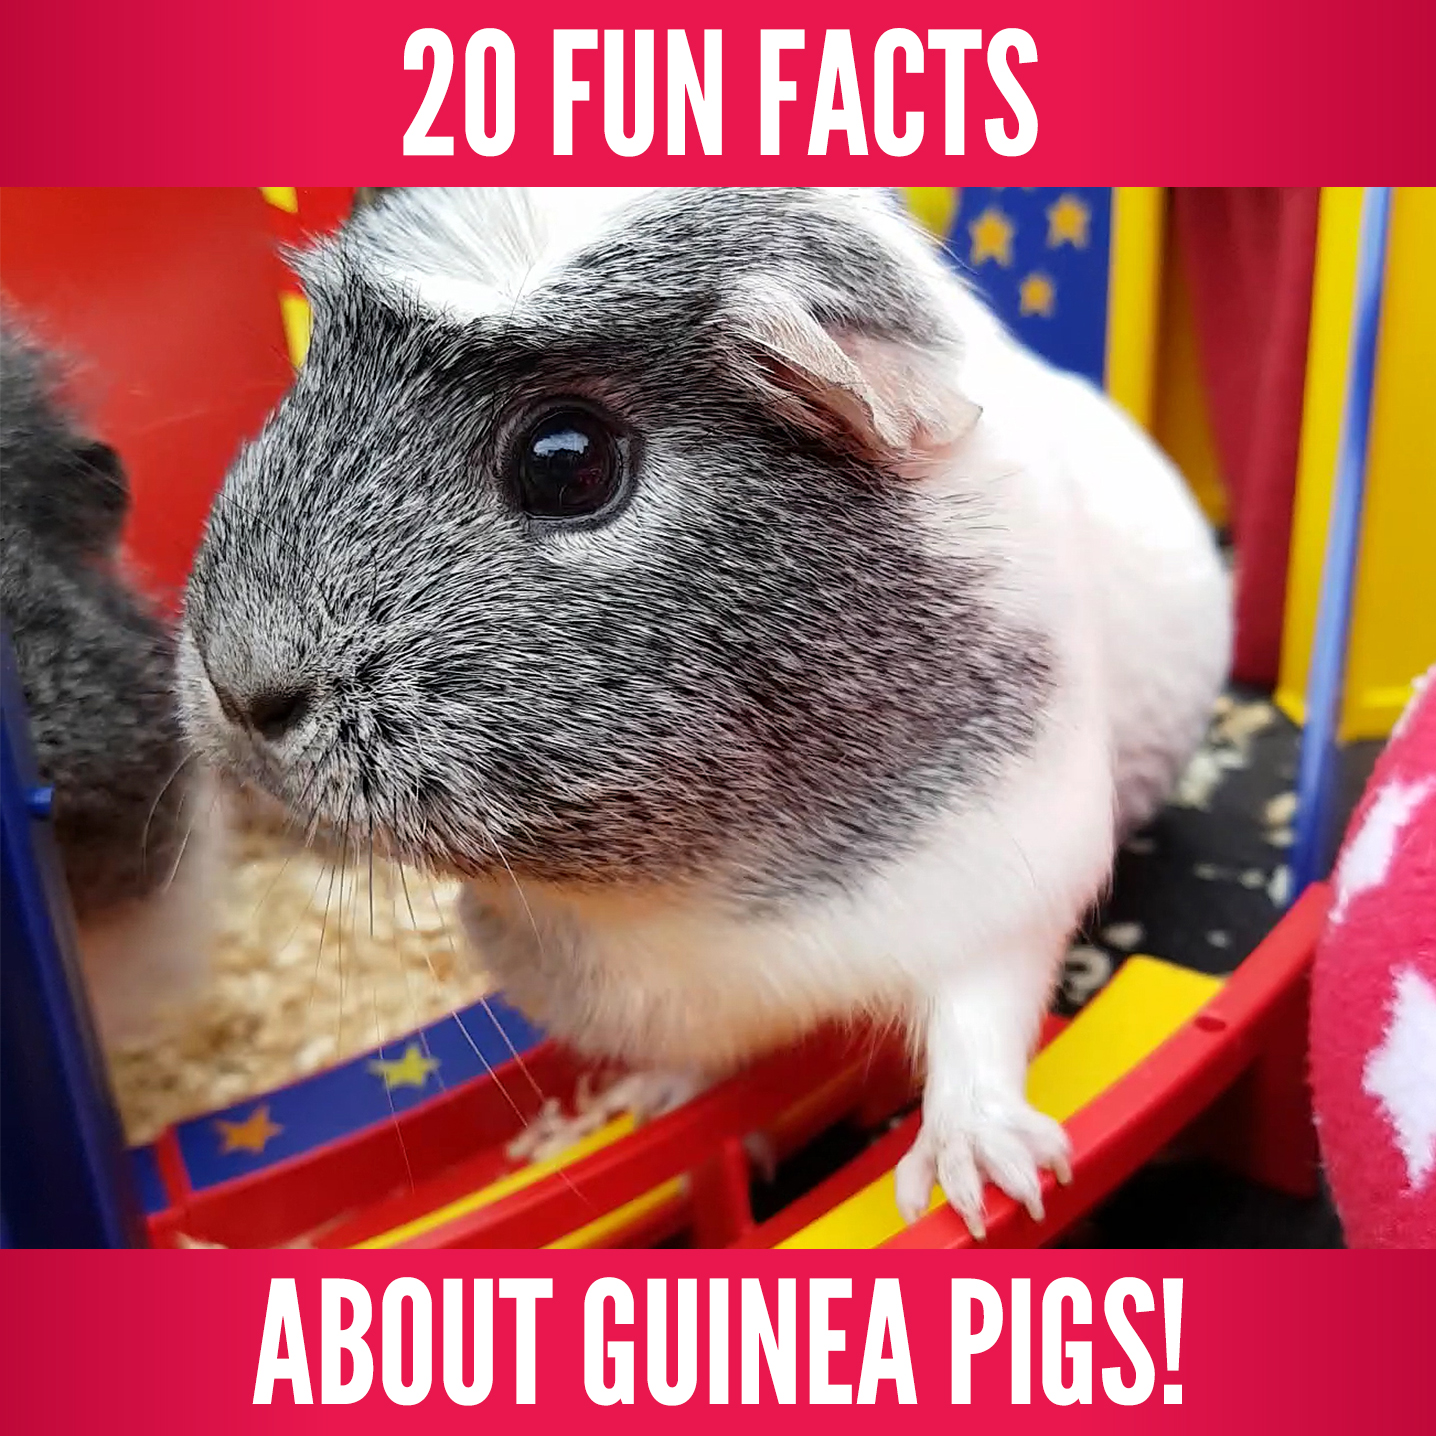 20 Fun Facts About Guinea Pigs.jpg